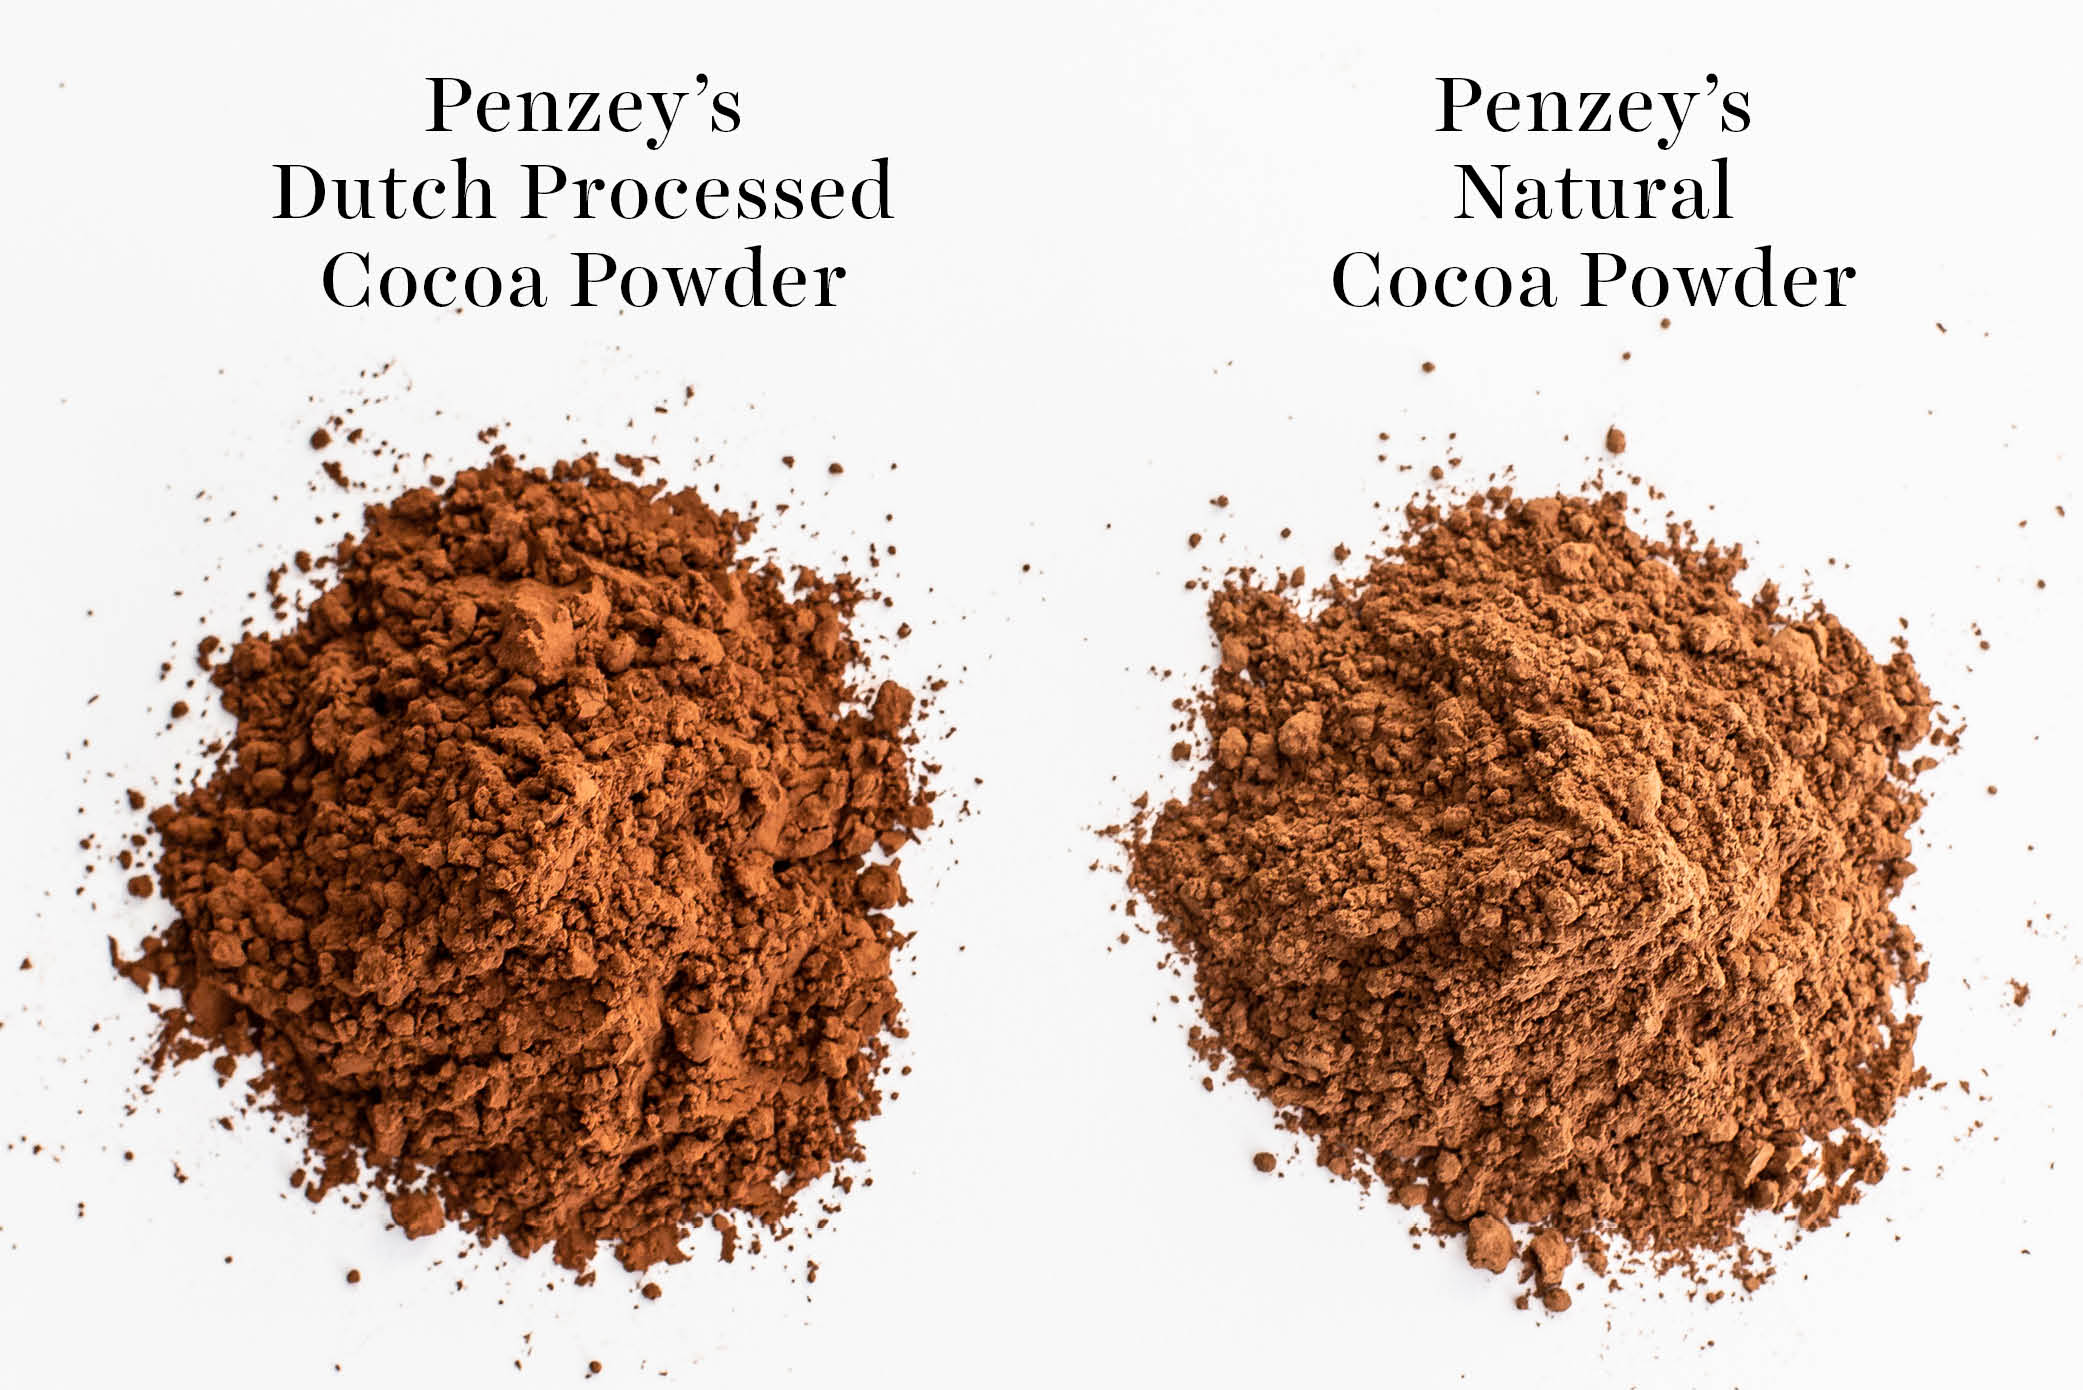 comparison of Penzey's dutch processed vs natural cocoa powder